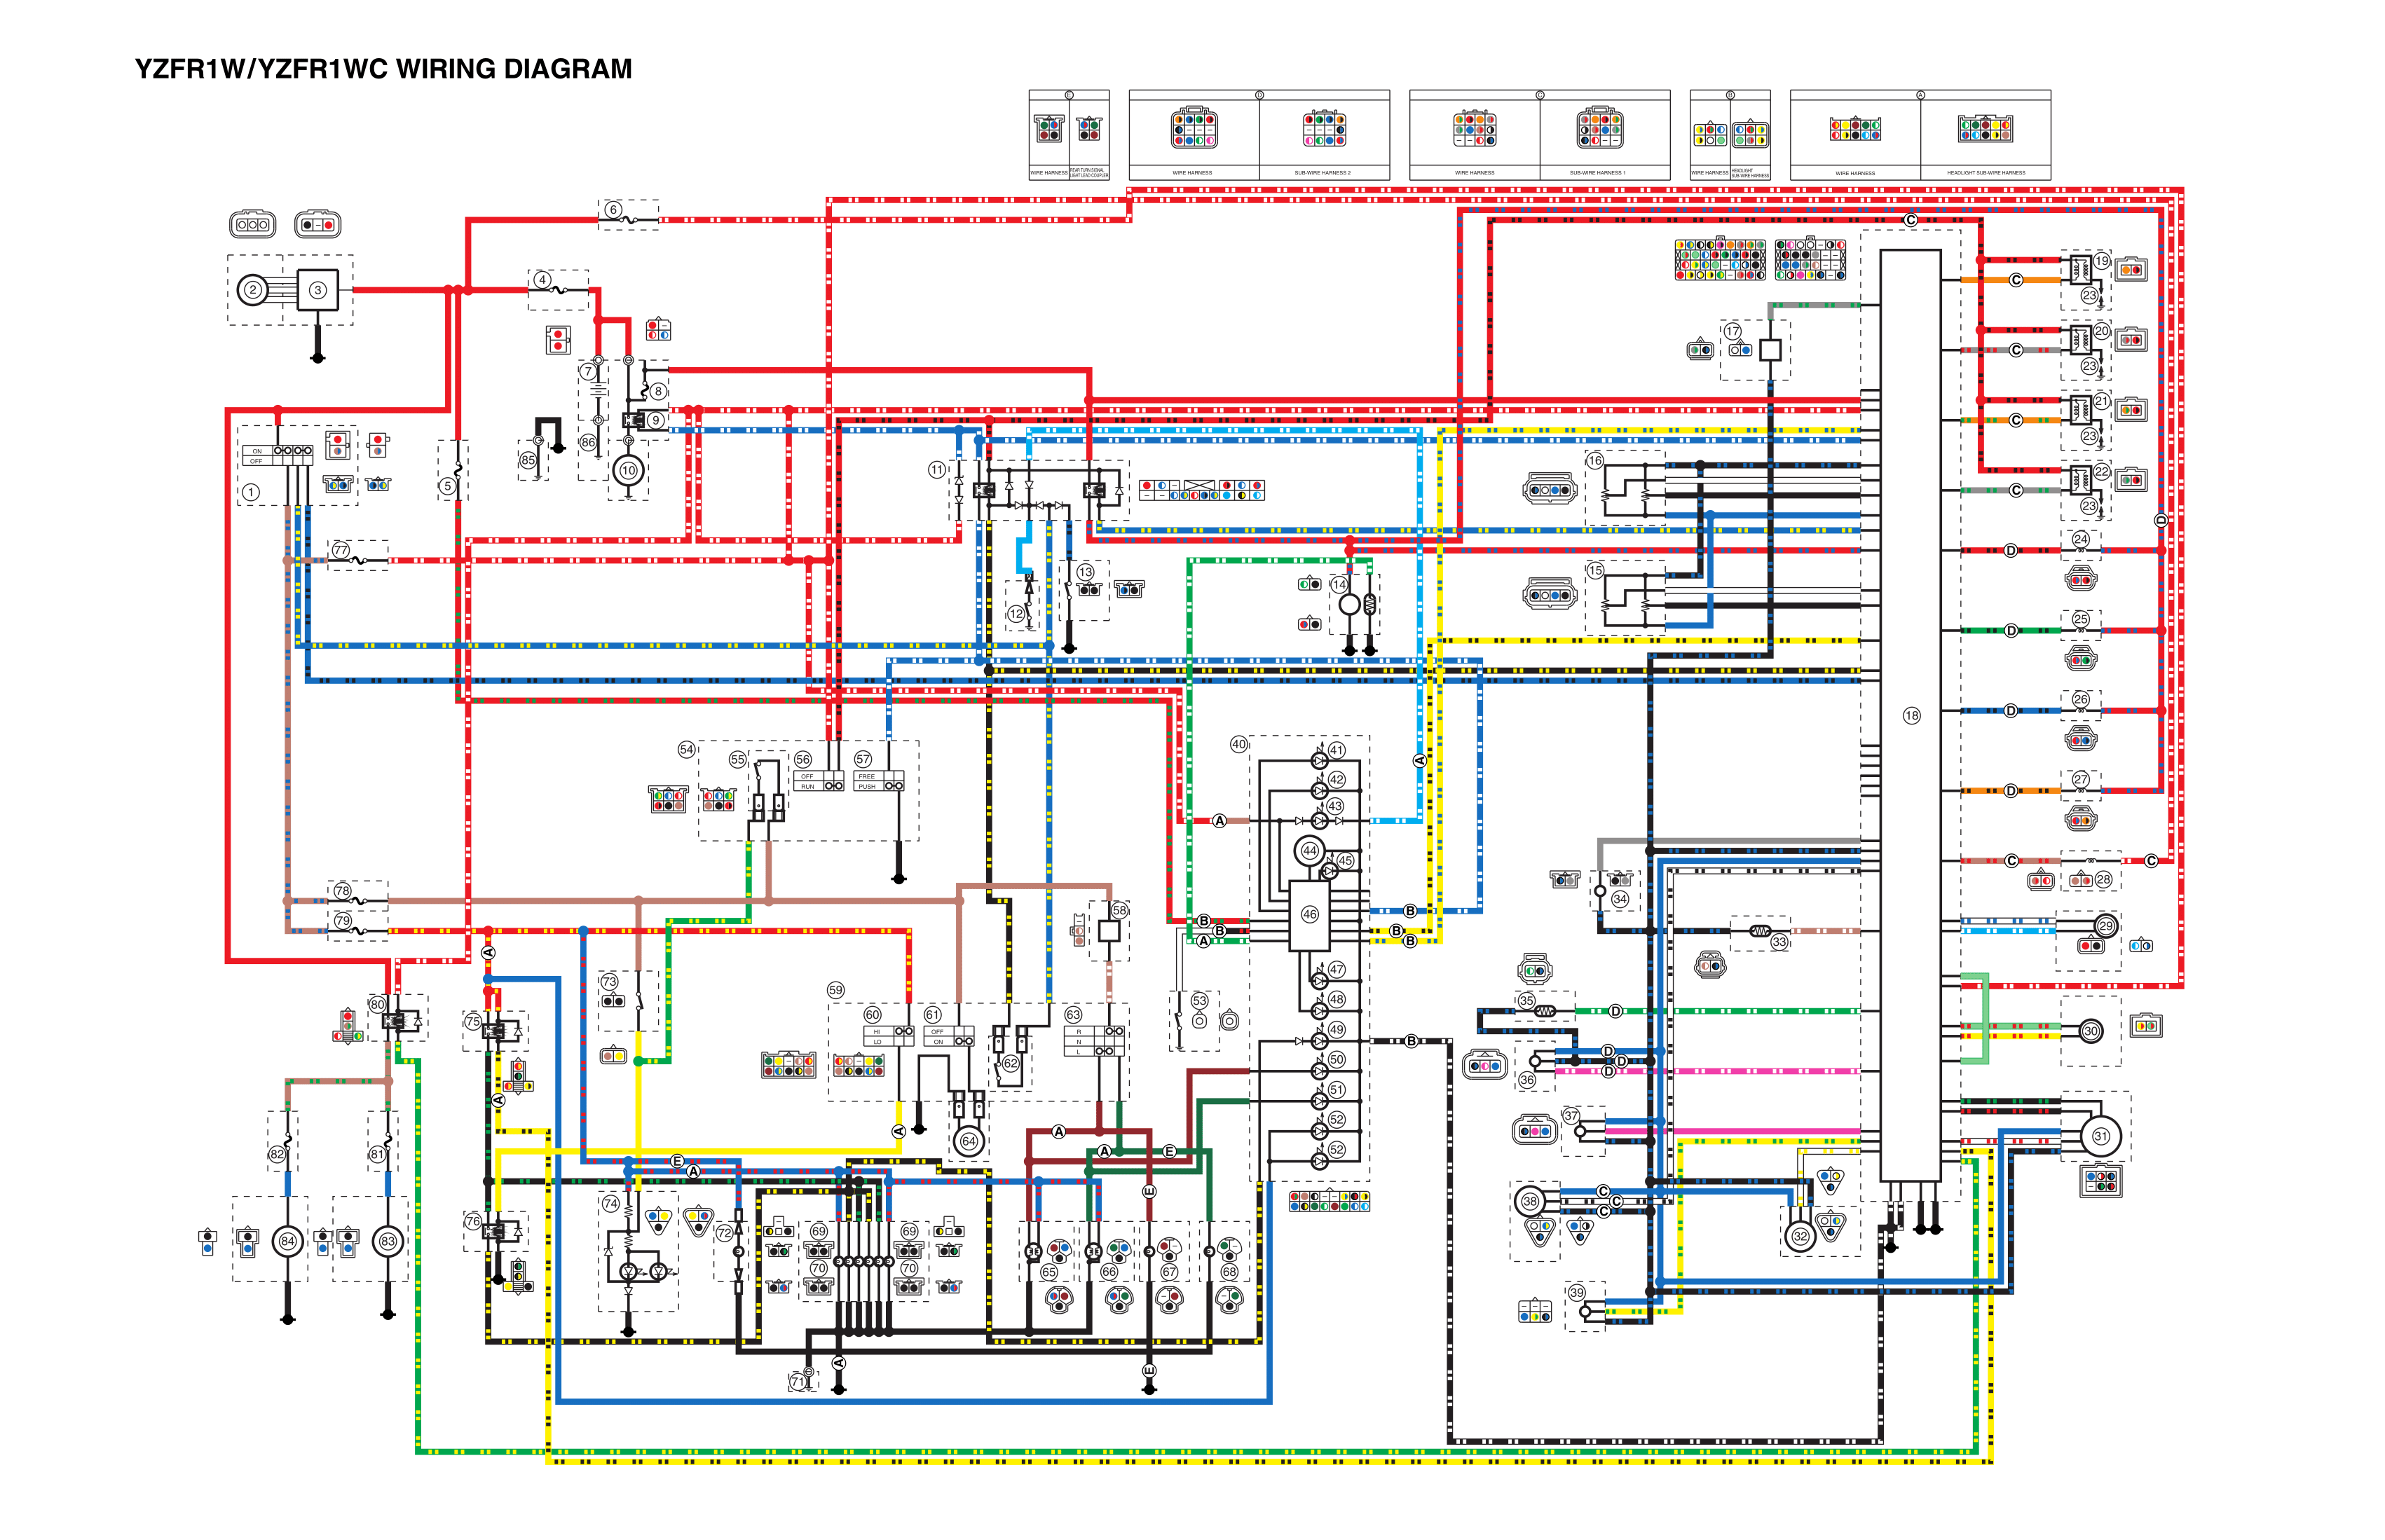 Diagram  Yamaha Yzf 750 R Wiring Diagram Full Version Hd Quality Wiring Diagram